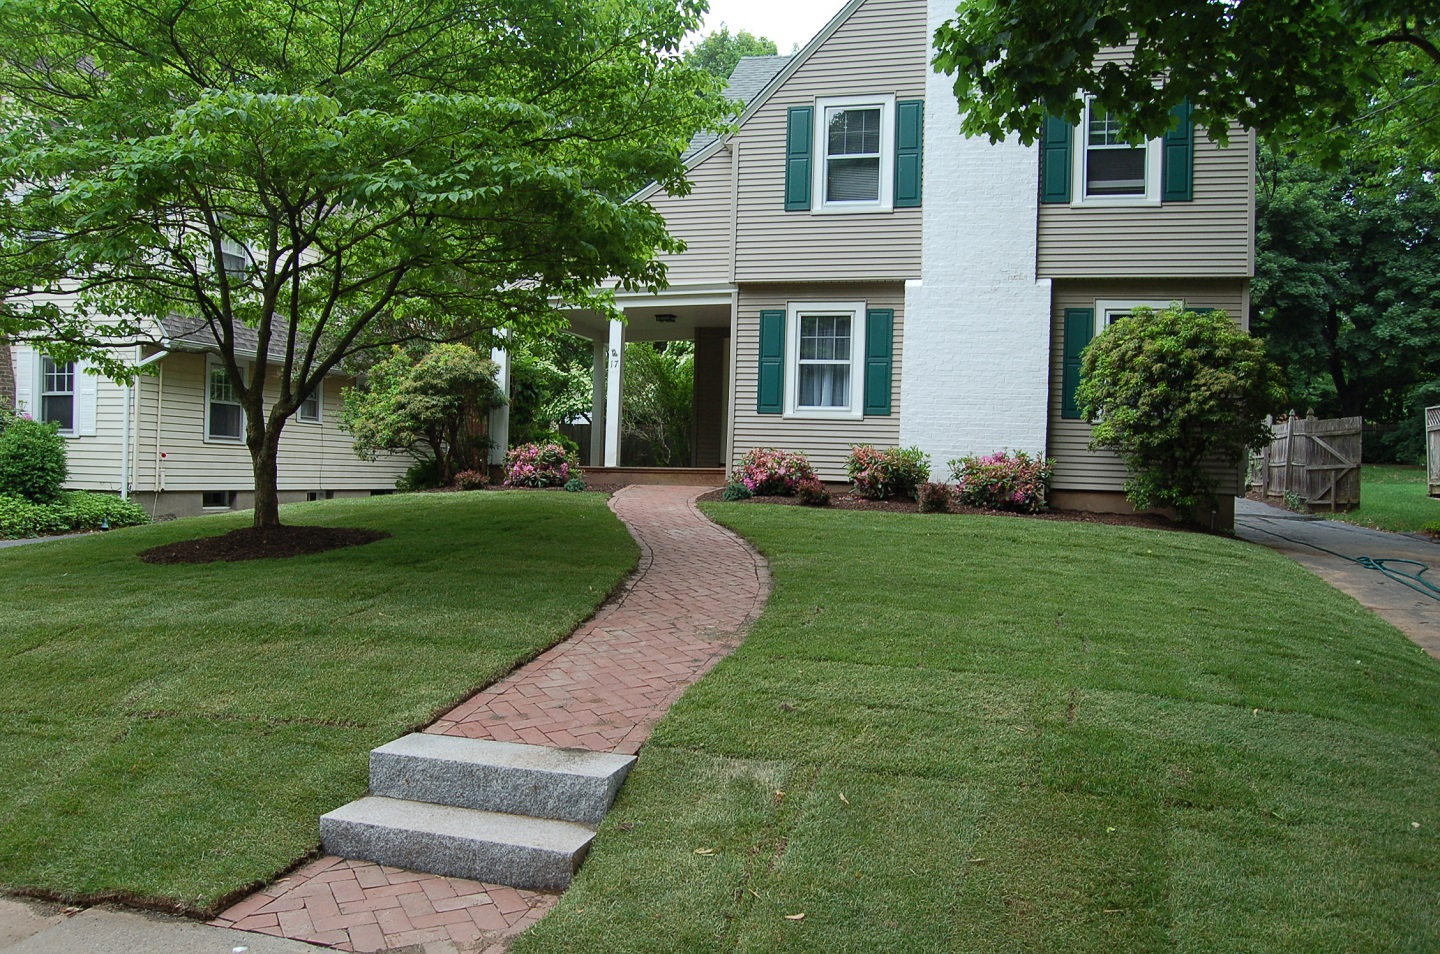 Landscape company for lawn installation in Newington, CT